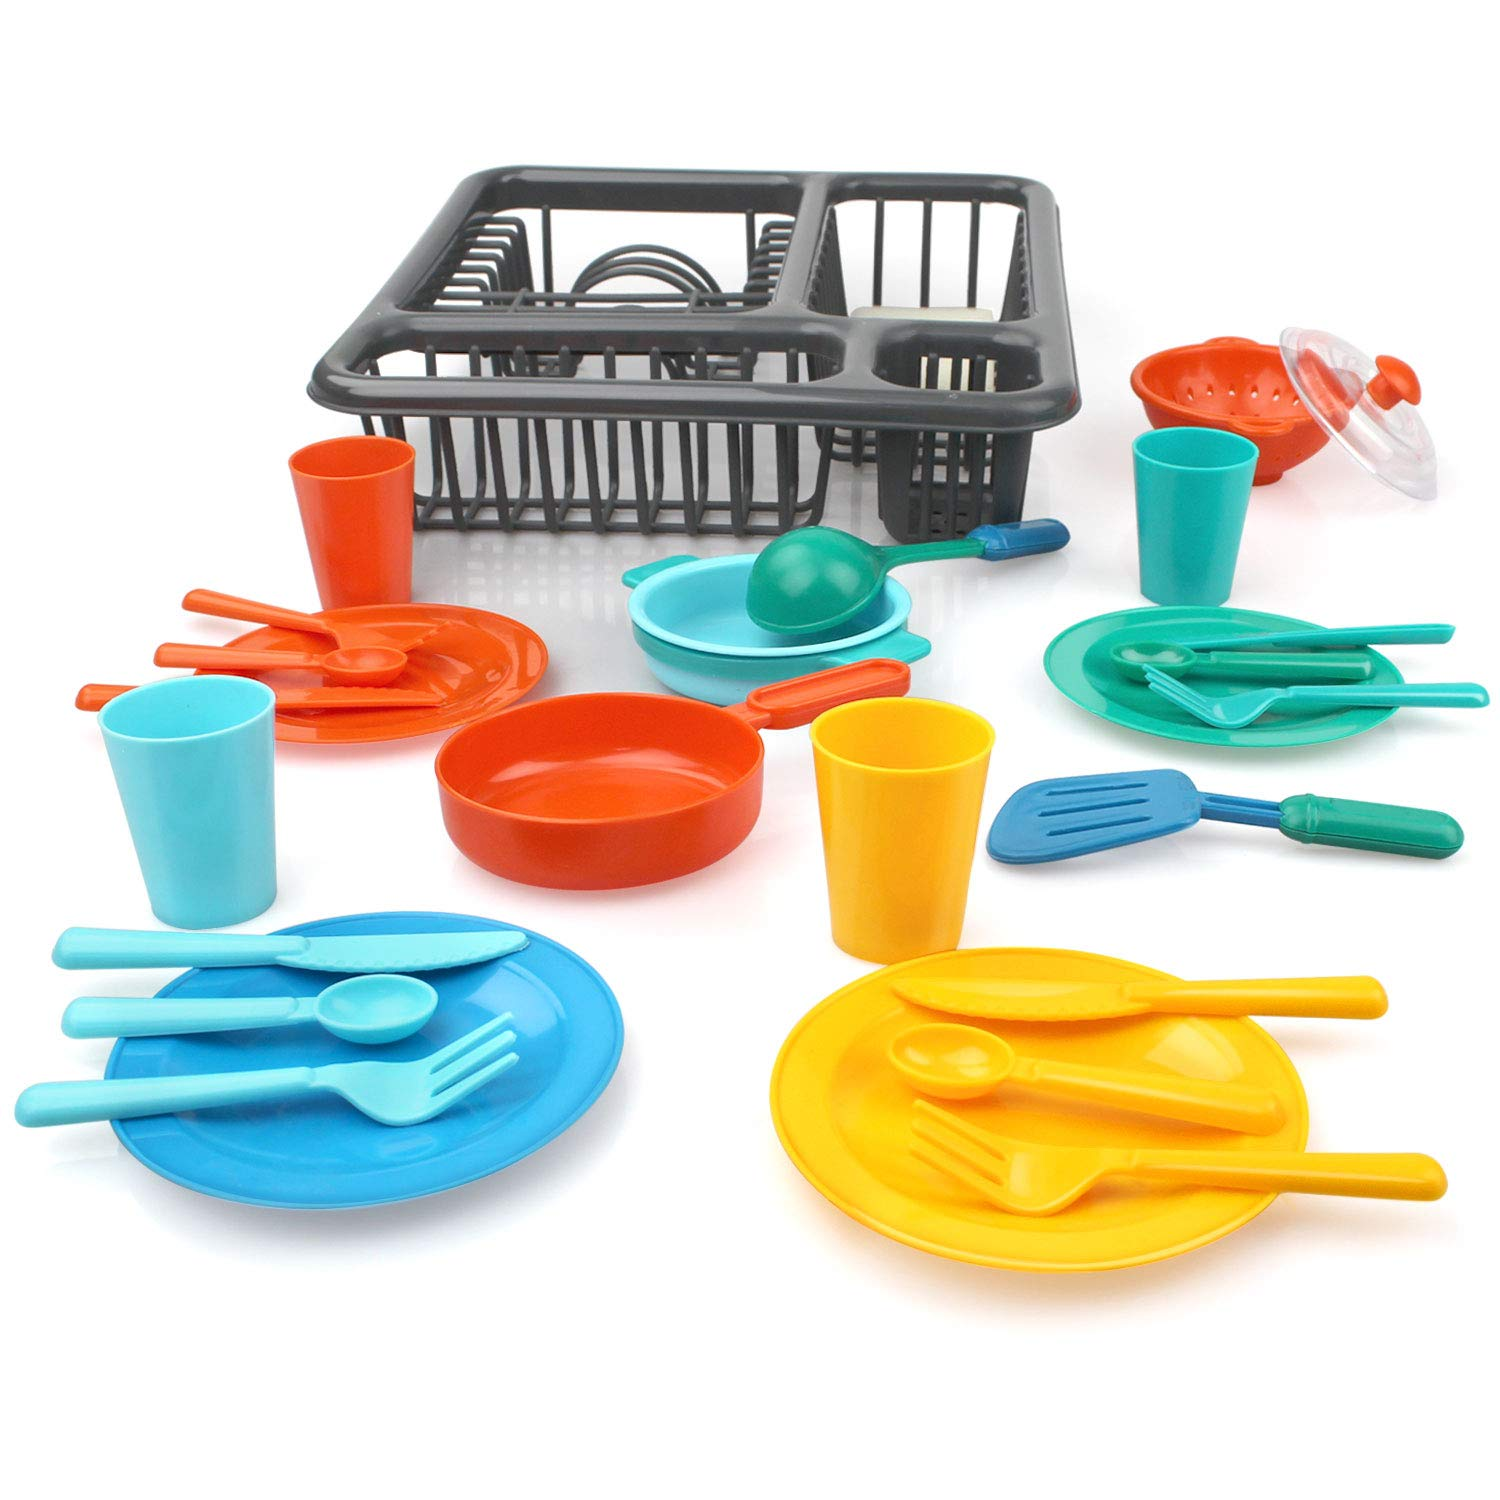 Amazon com growthpic pretend play kitchen set for kids kitchen toys tableware dishes playset with drainer 27 pcs toys games